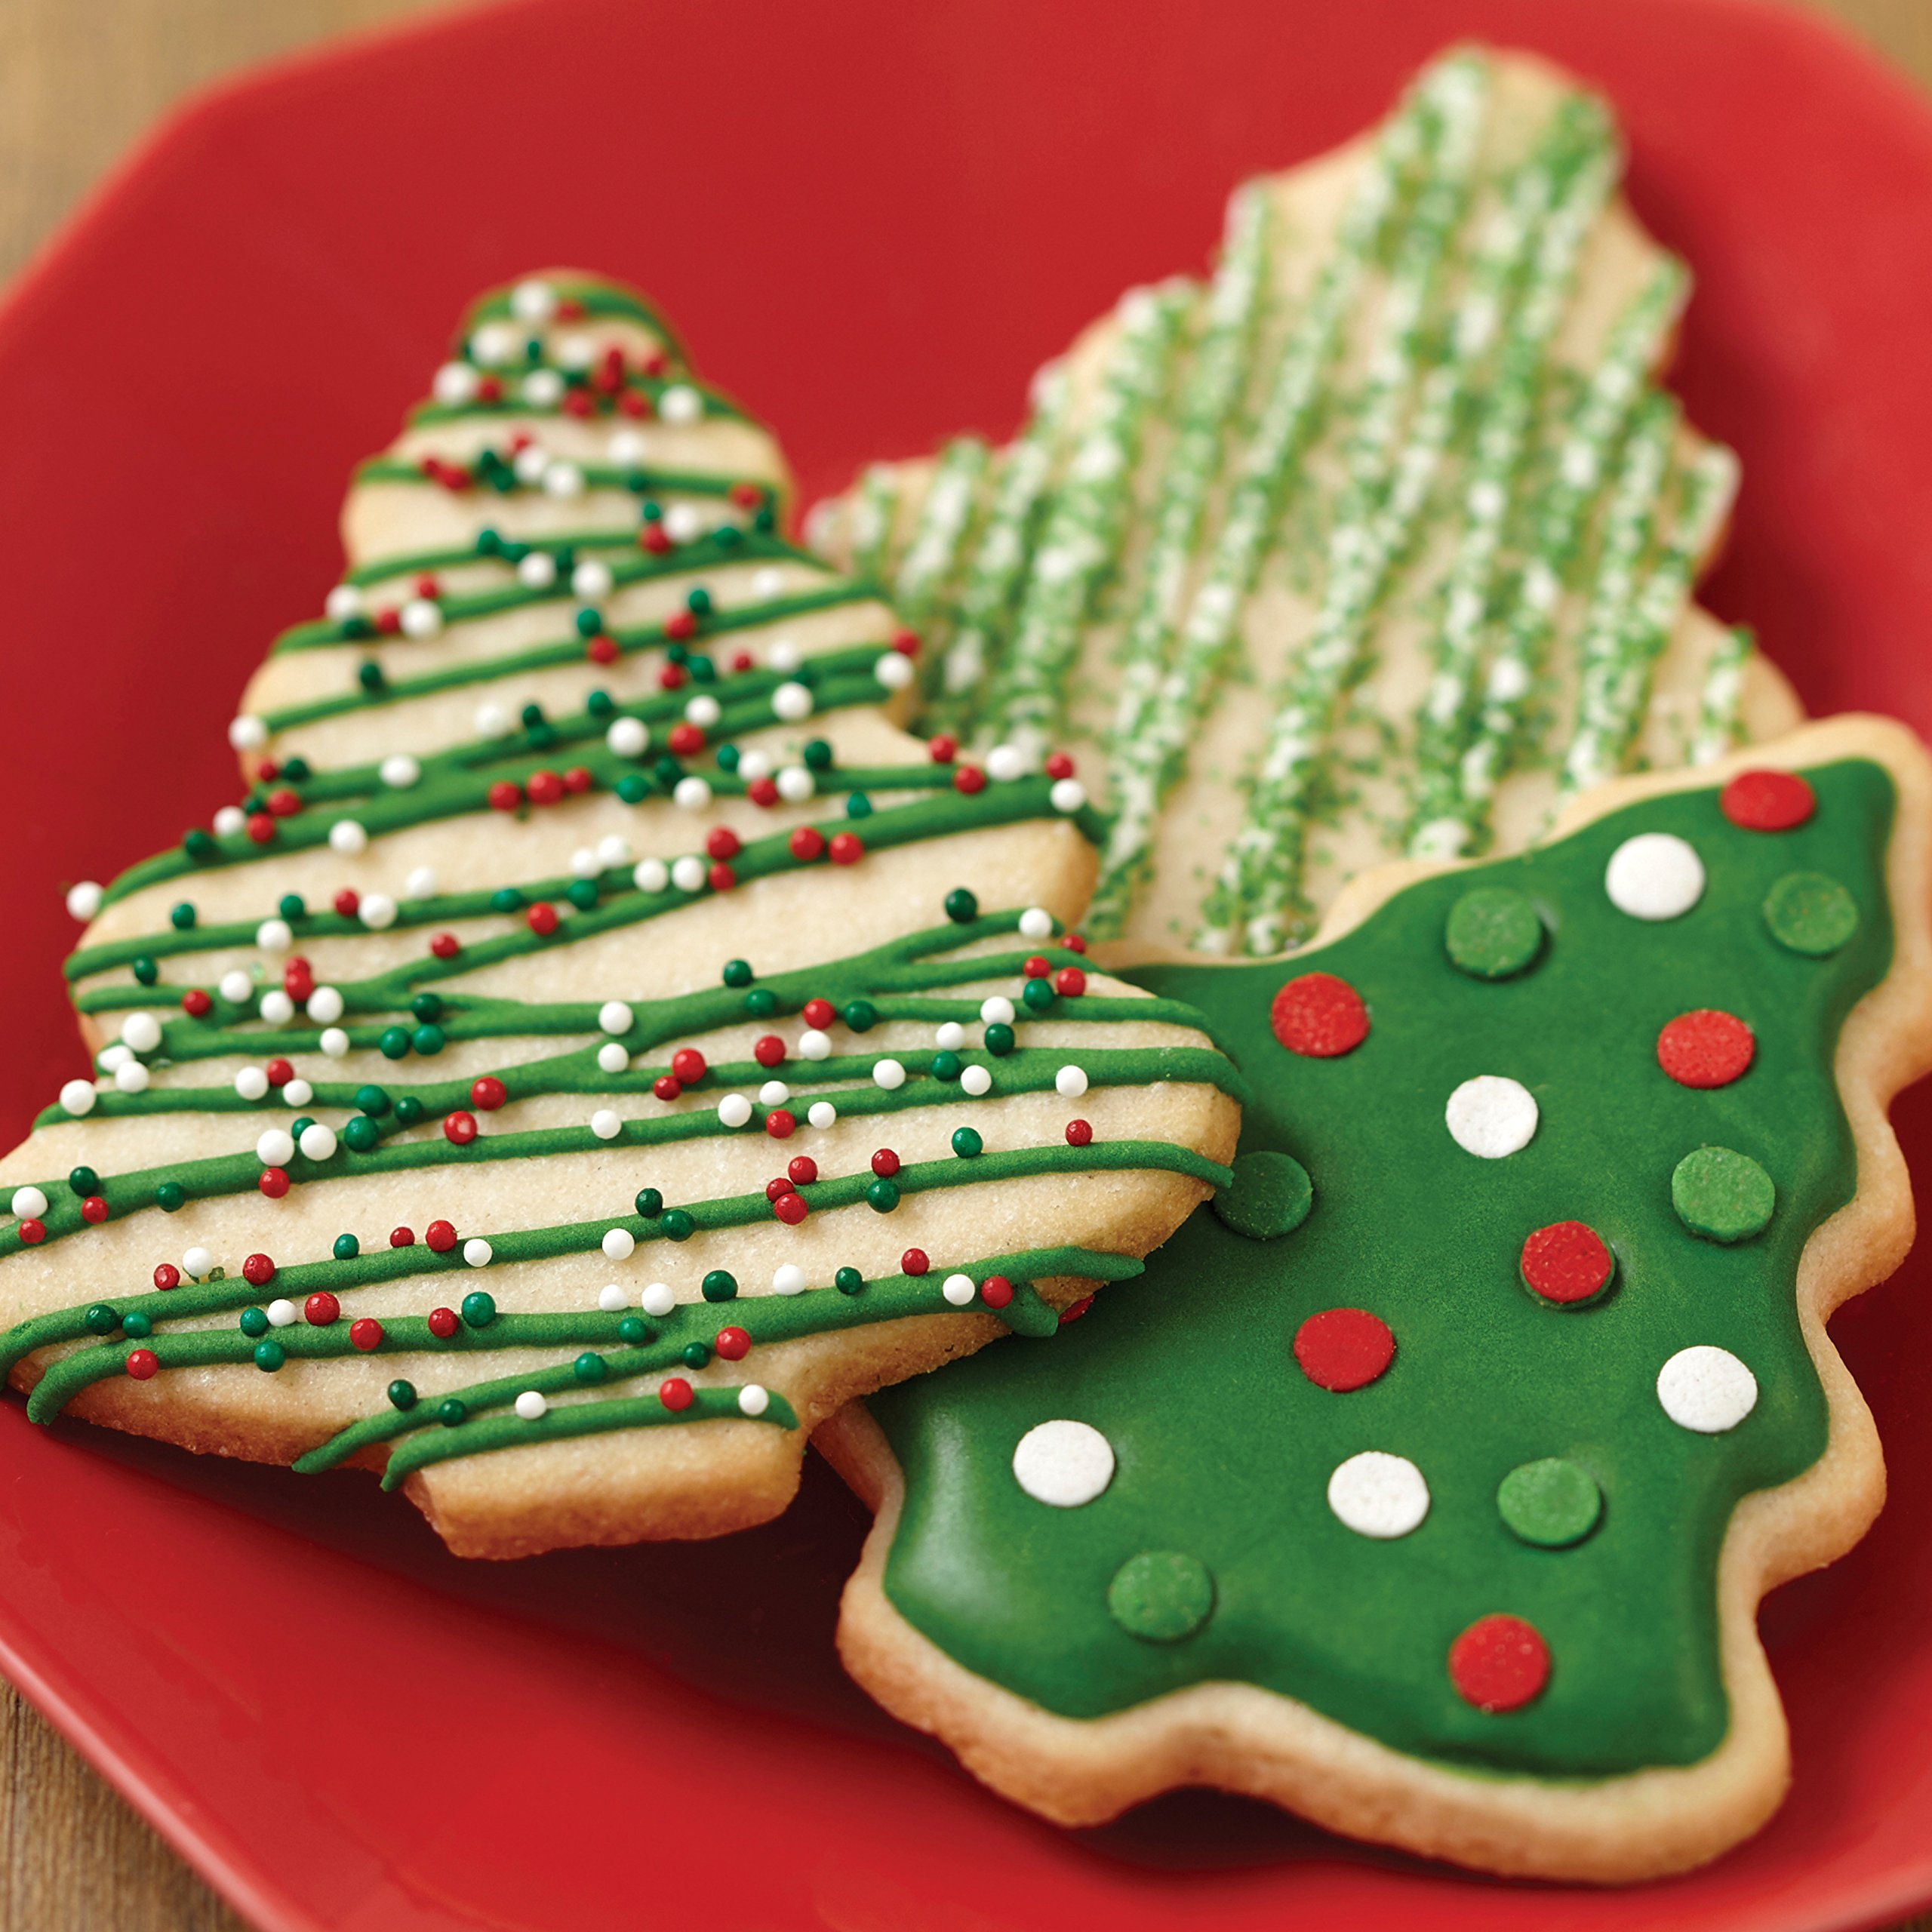 Wilton 2109-8429 Red and Green Holiday Cookie Decorating Icing, Multipack of 6, Assorted by Wilton (Image #9)